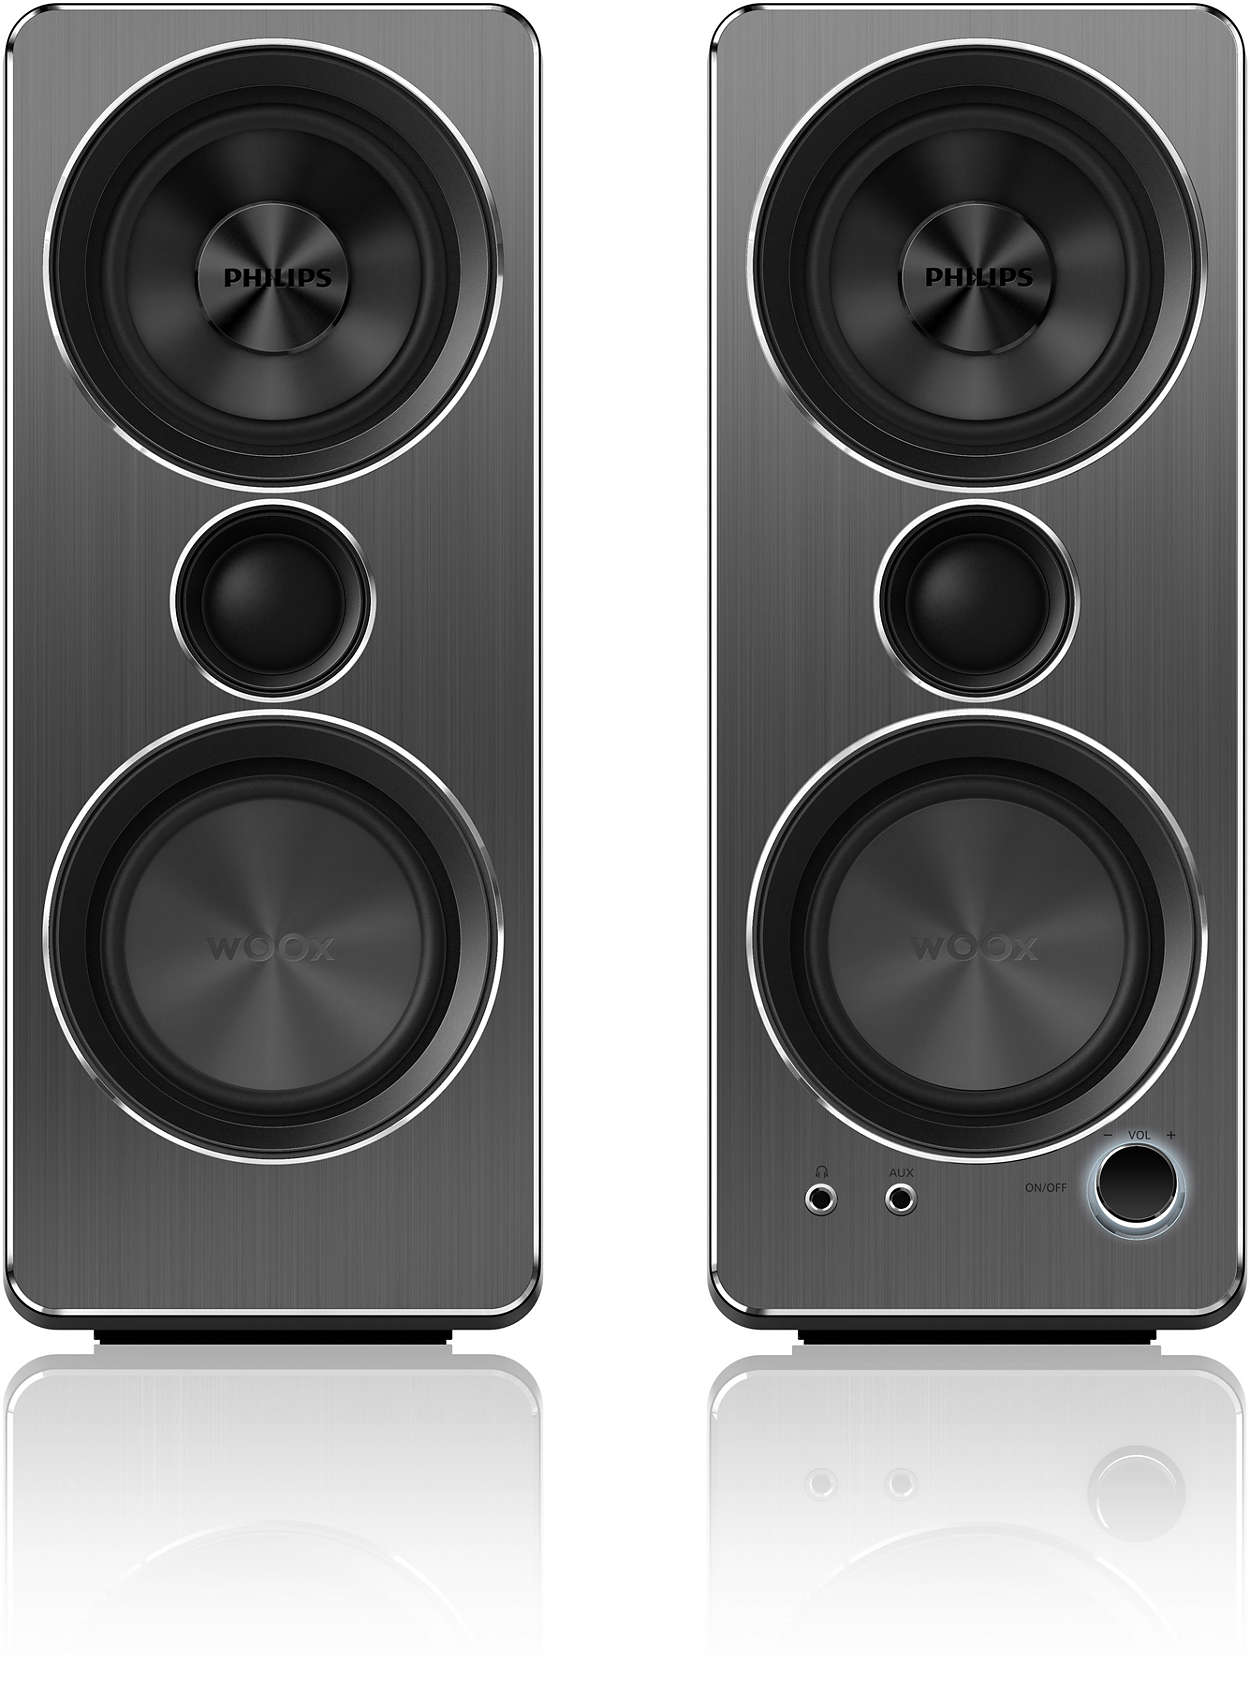 Multimedia Speakers 2 0 Spa8210 37 Philips